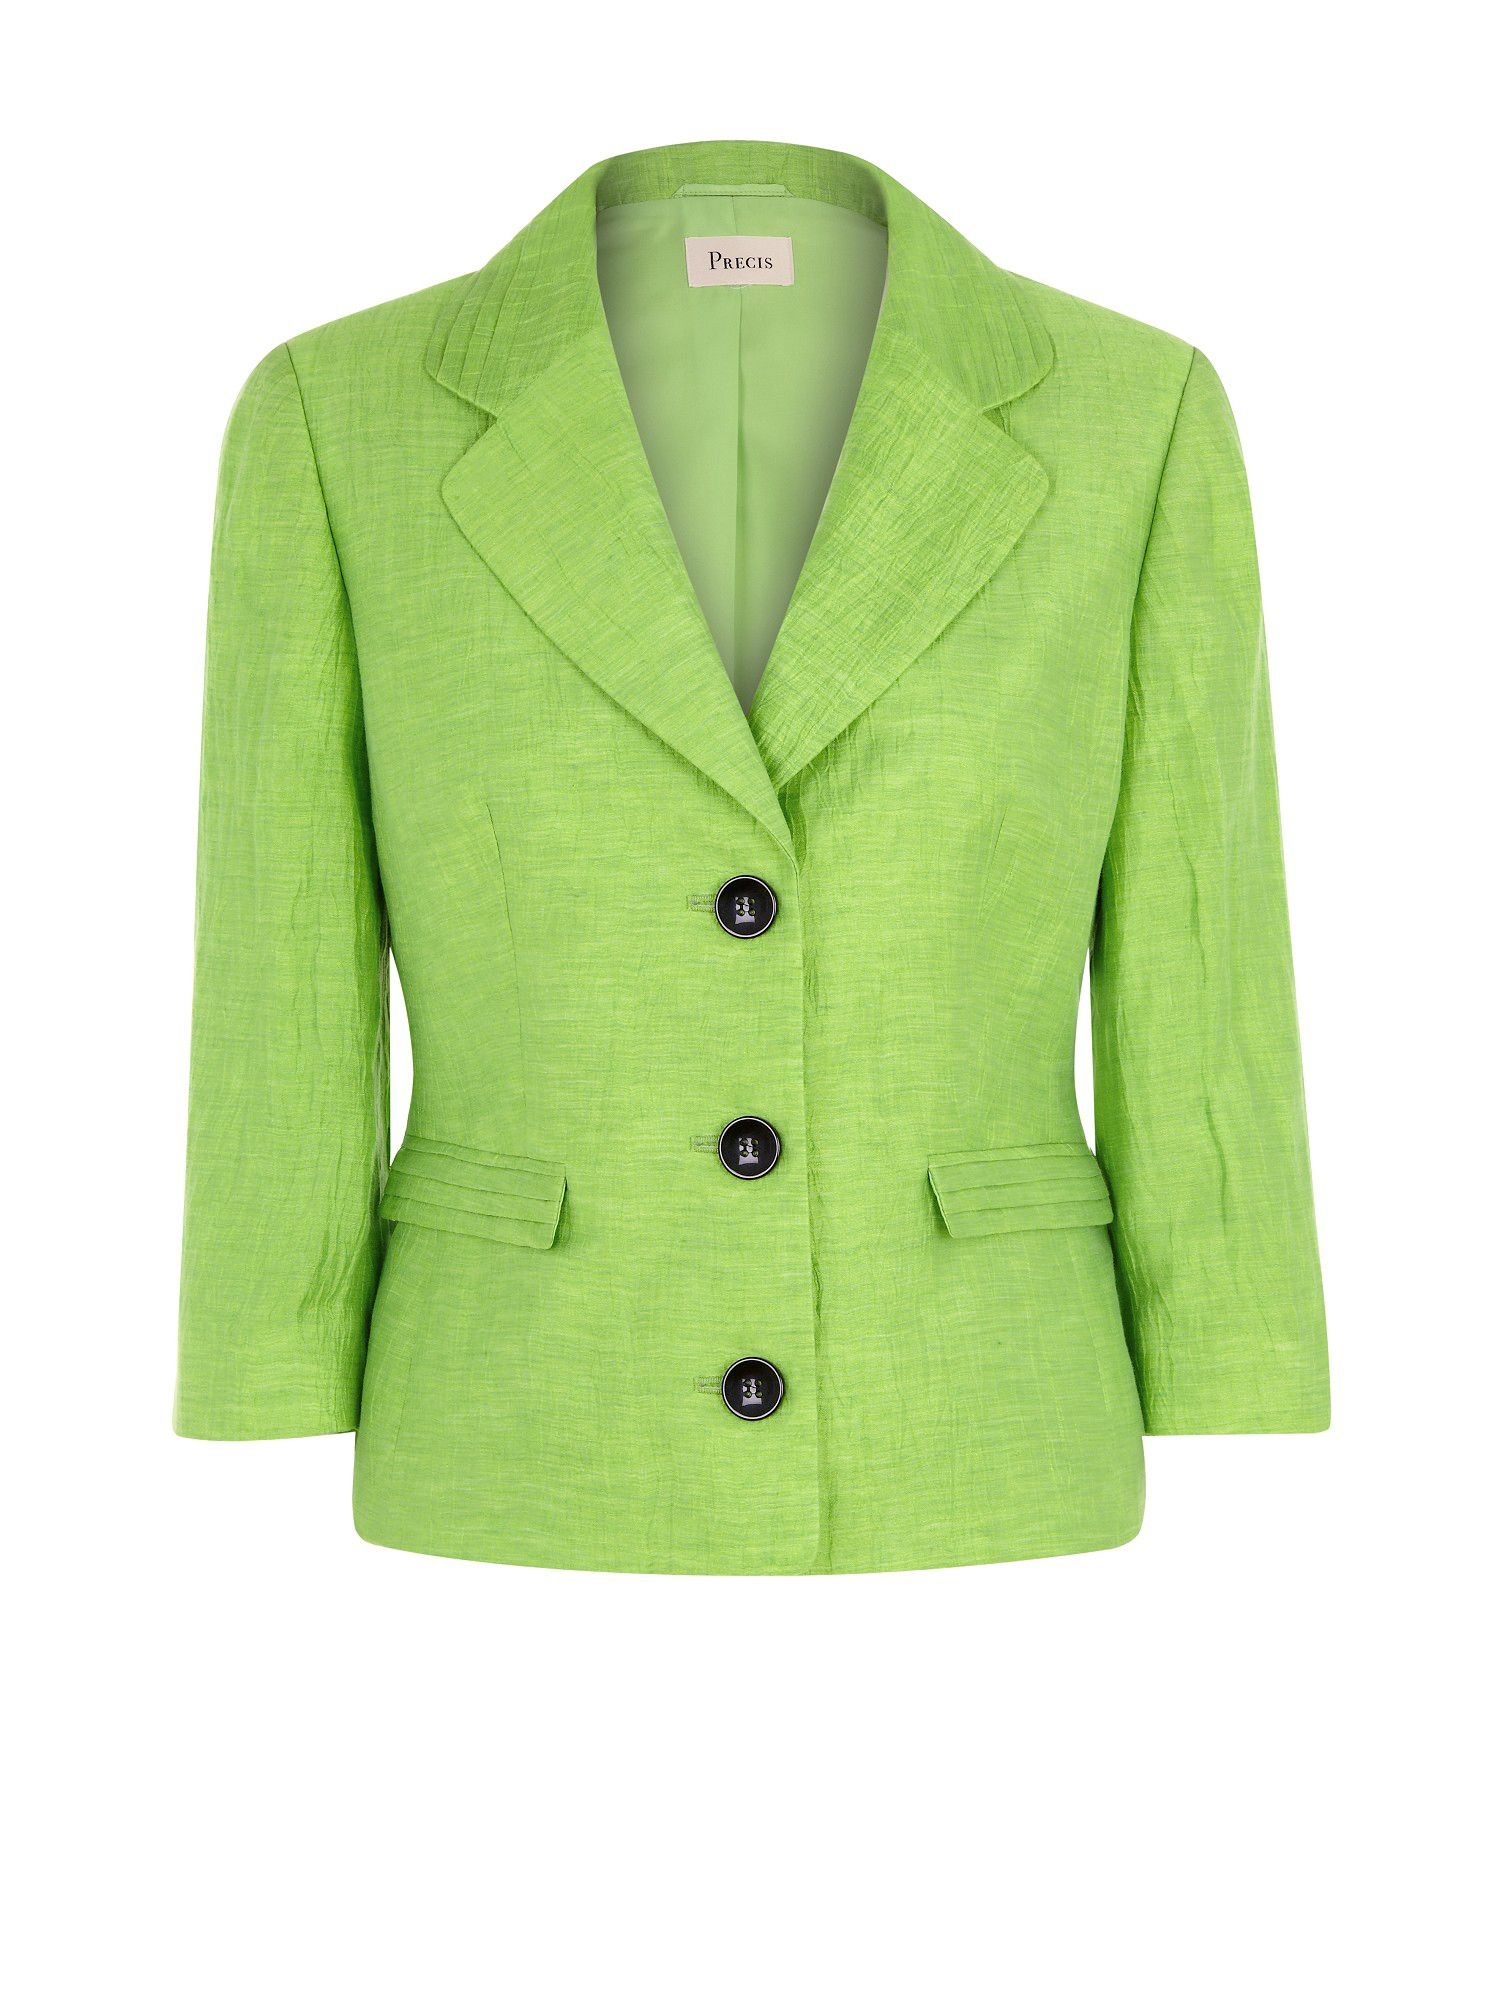 Apple pleat collar jacket